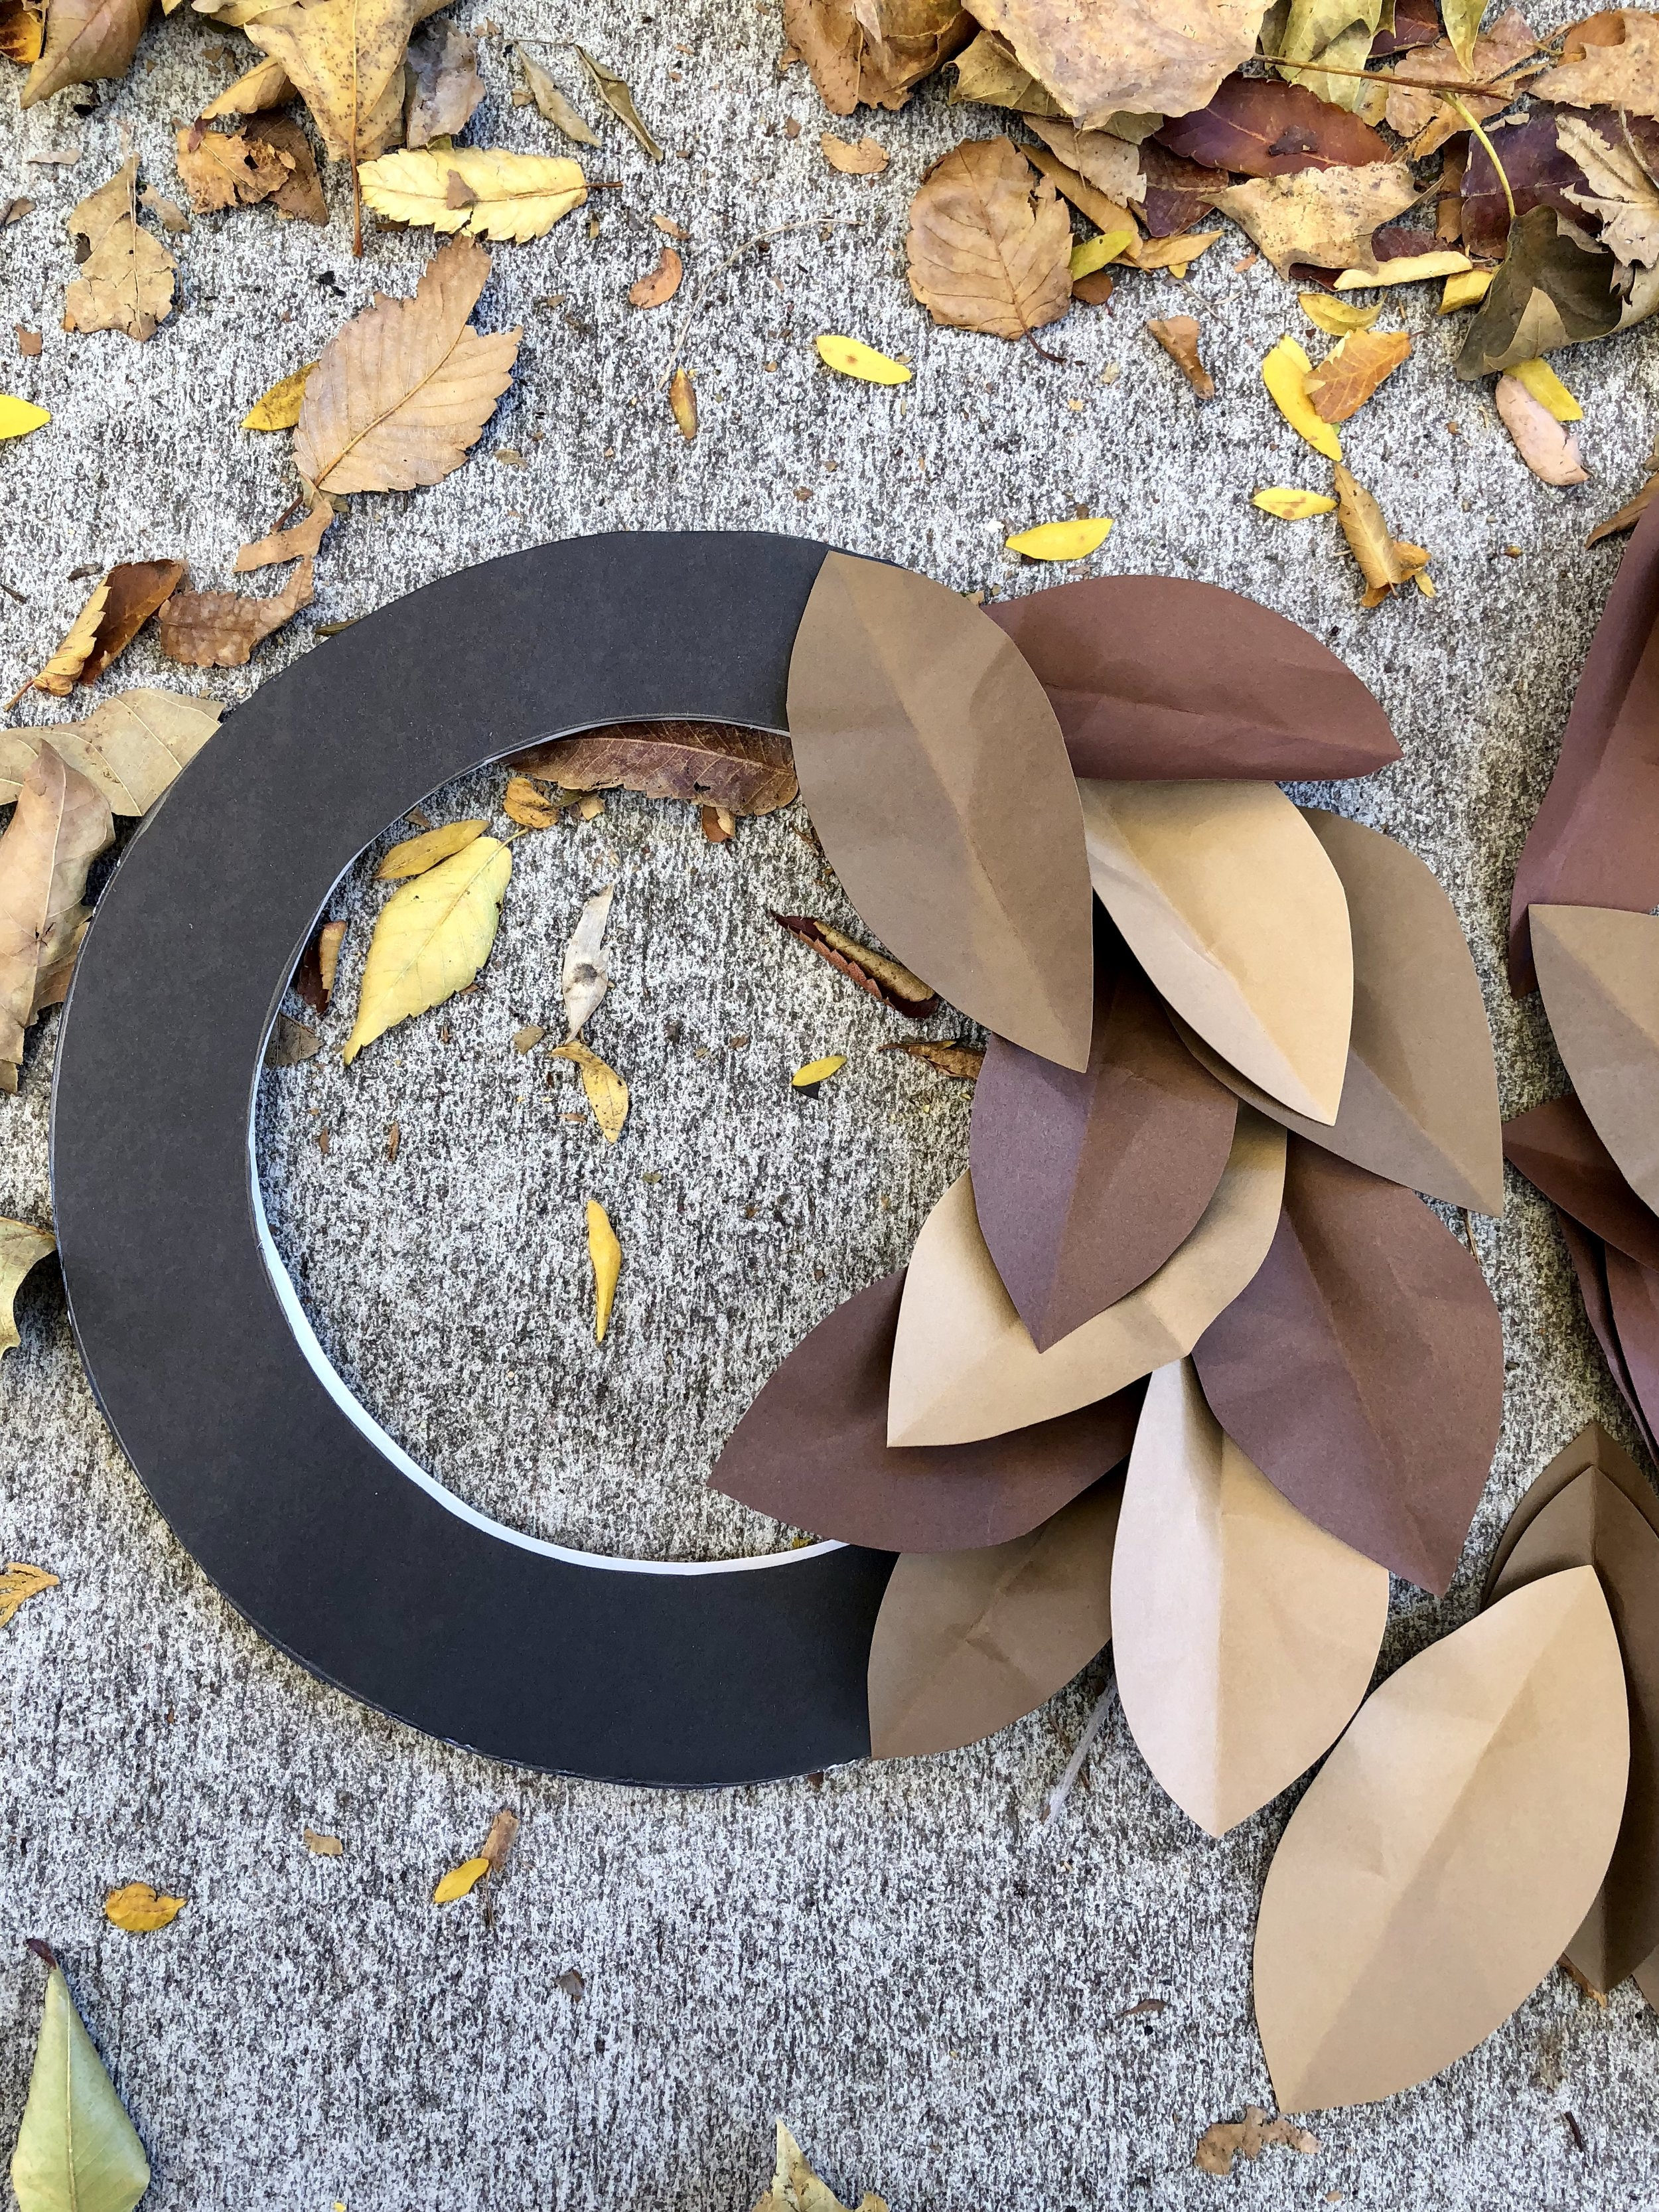 East DIY Paper Magnolia Wreath using cardstock and foam board  #paper #papercrafts #papercraftdiys #rachaelray #fallwreath #fall #falldiy #autumn #autumndiy #magnoliawreath #paperwreath #falldecor #falldecorations #leaves #diyleaves #paperleaves #wreathring #wreath #autumnwreath #dollarstore #dollarstorecrafts #easycrafts